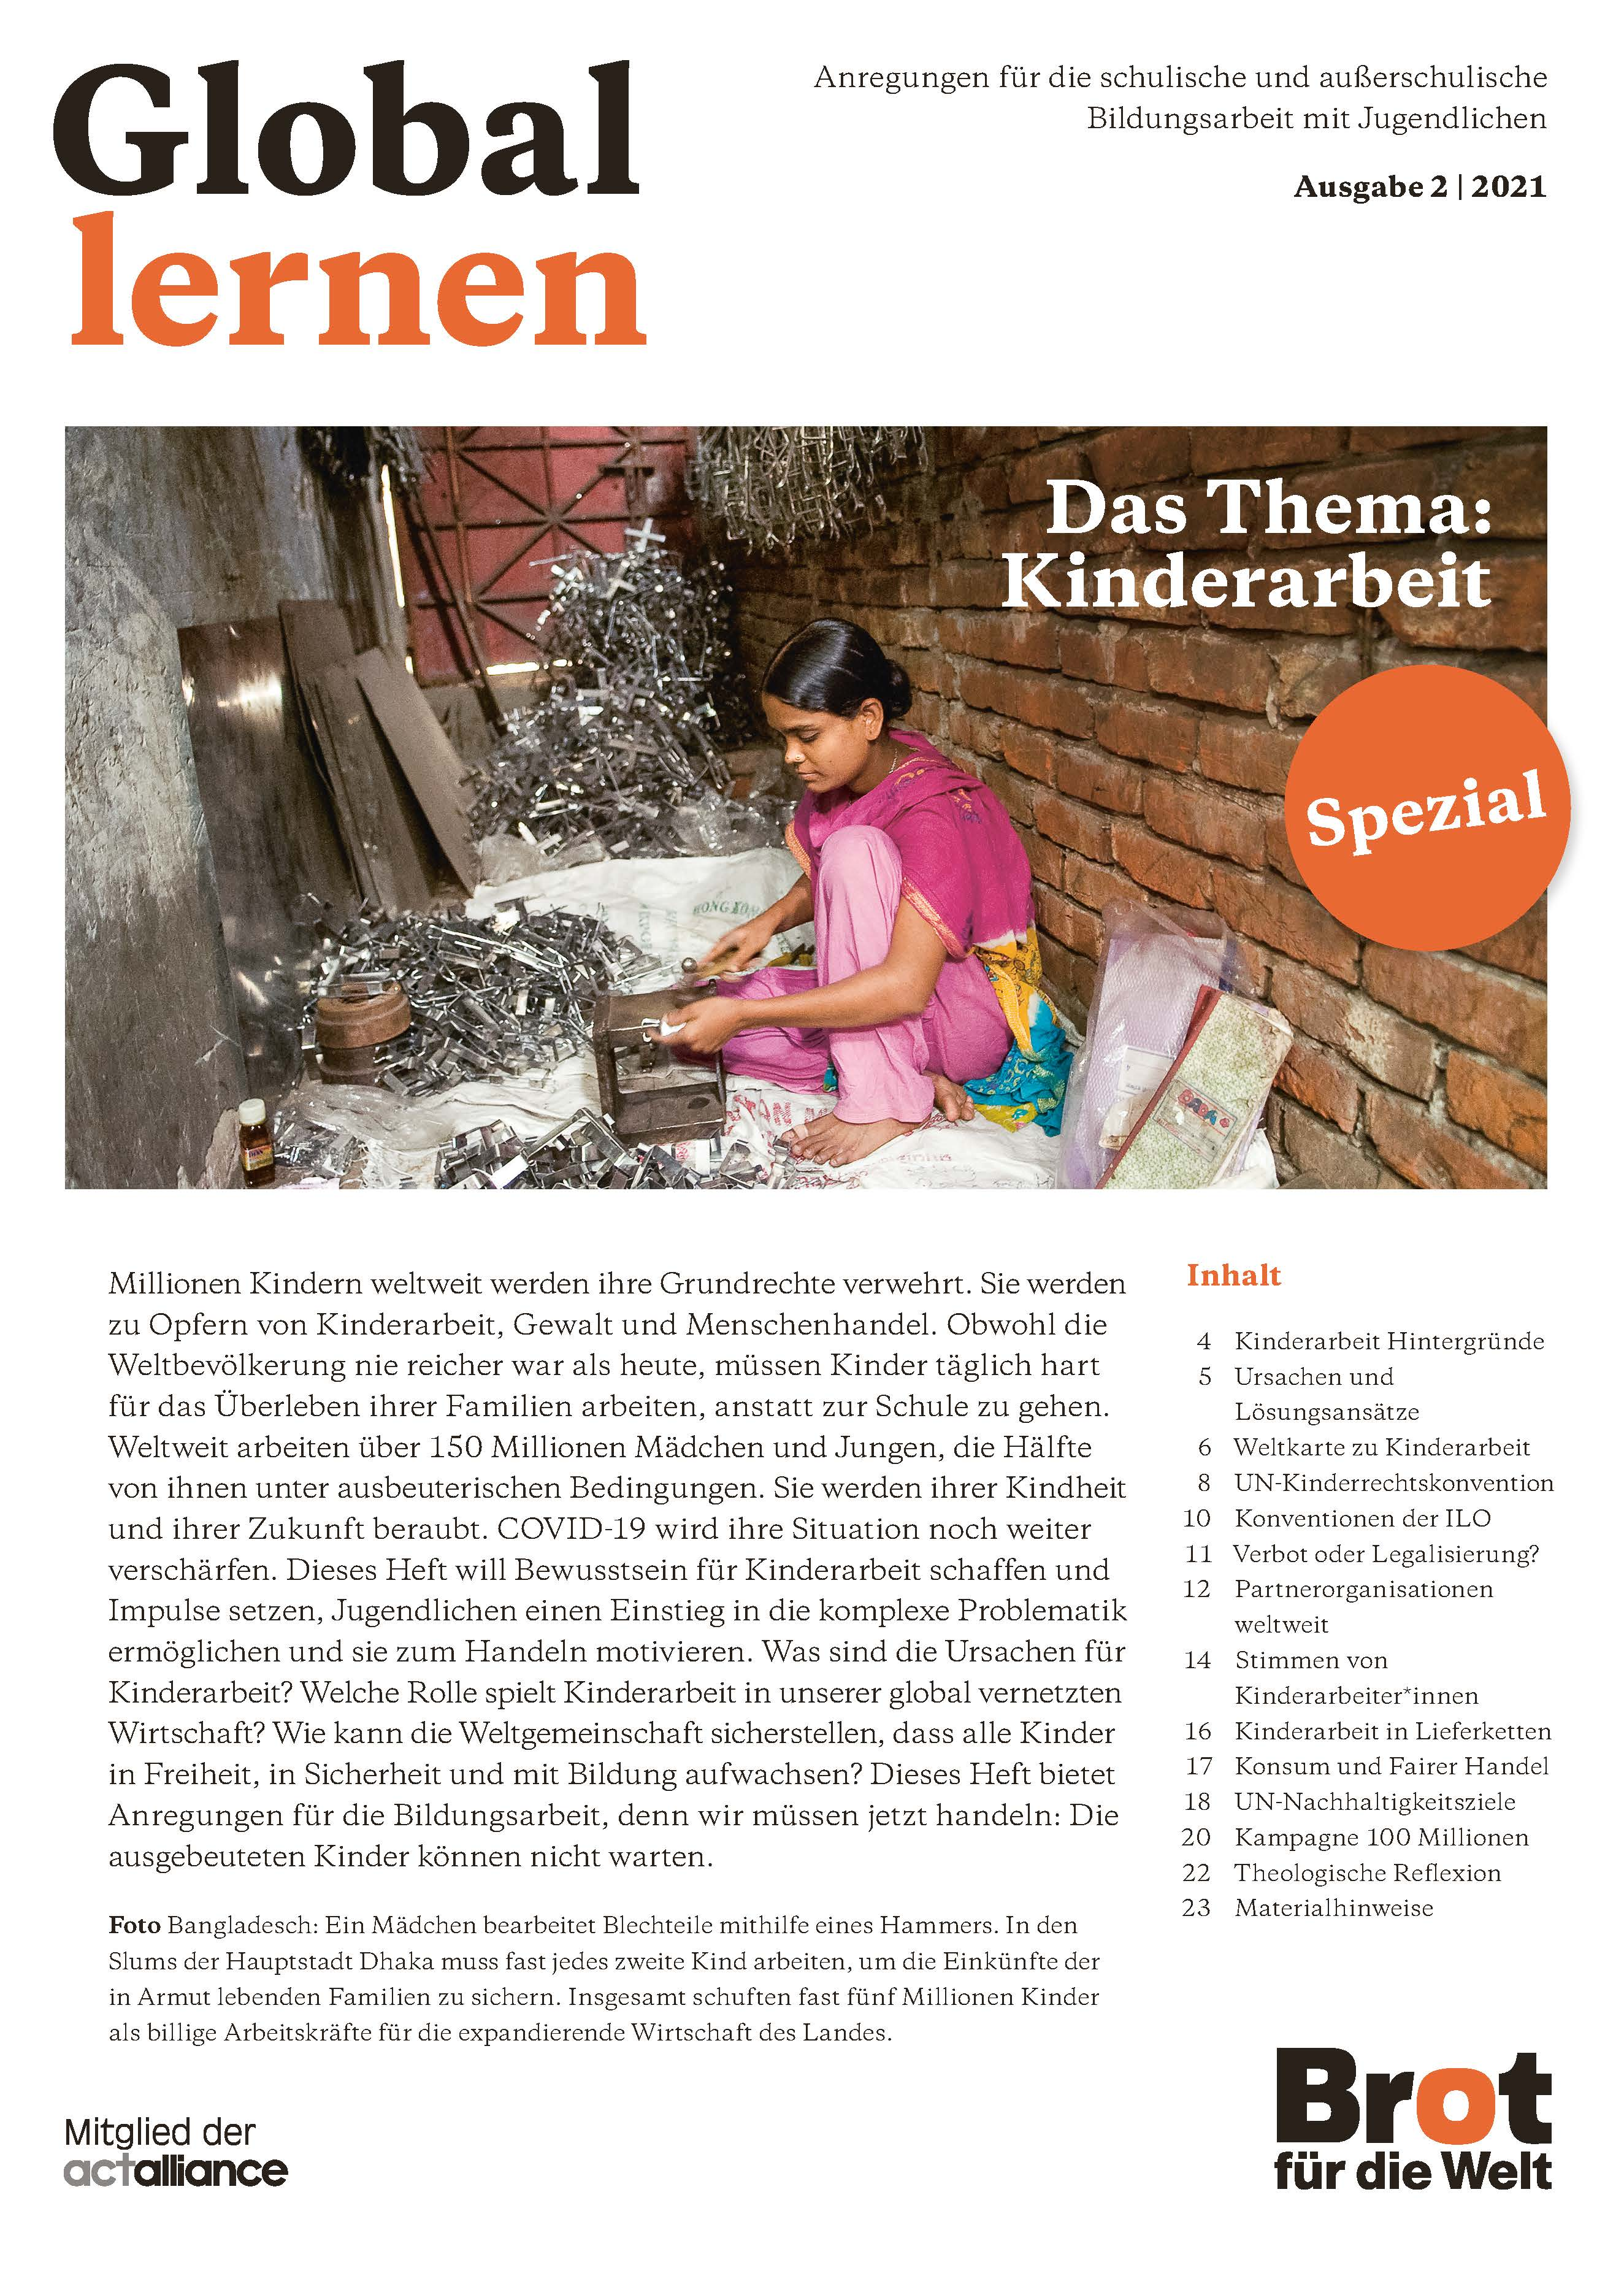 Global lernen: Kinderarbeit